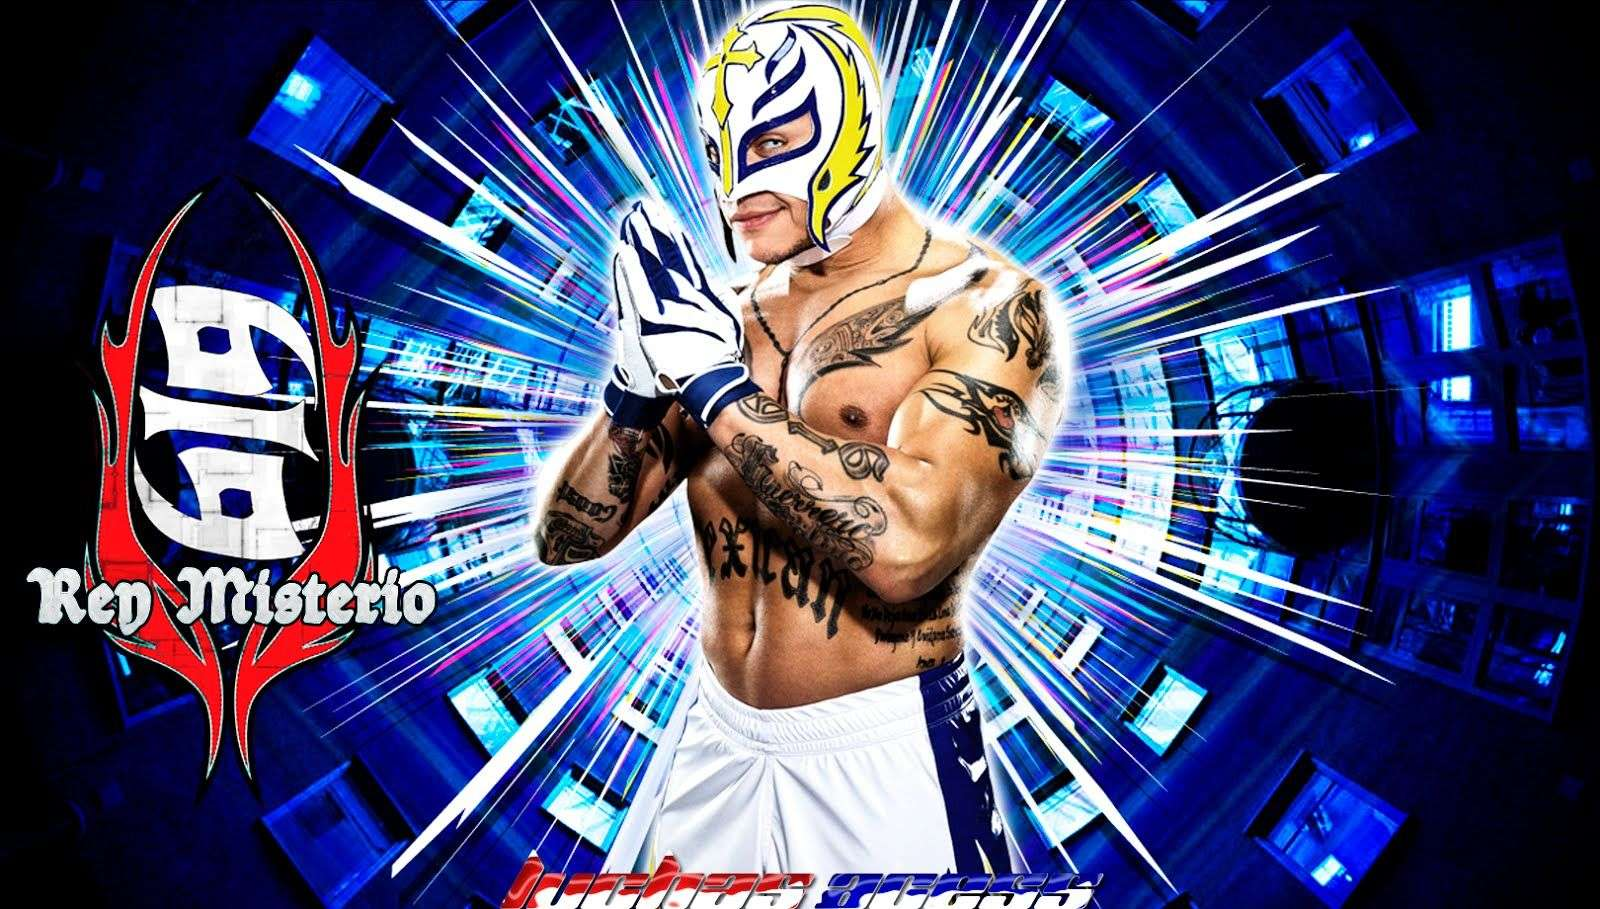 Rey Mysterio 2016 Full Hd Wallpapers Wallpaper Cave